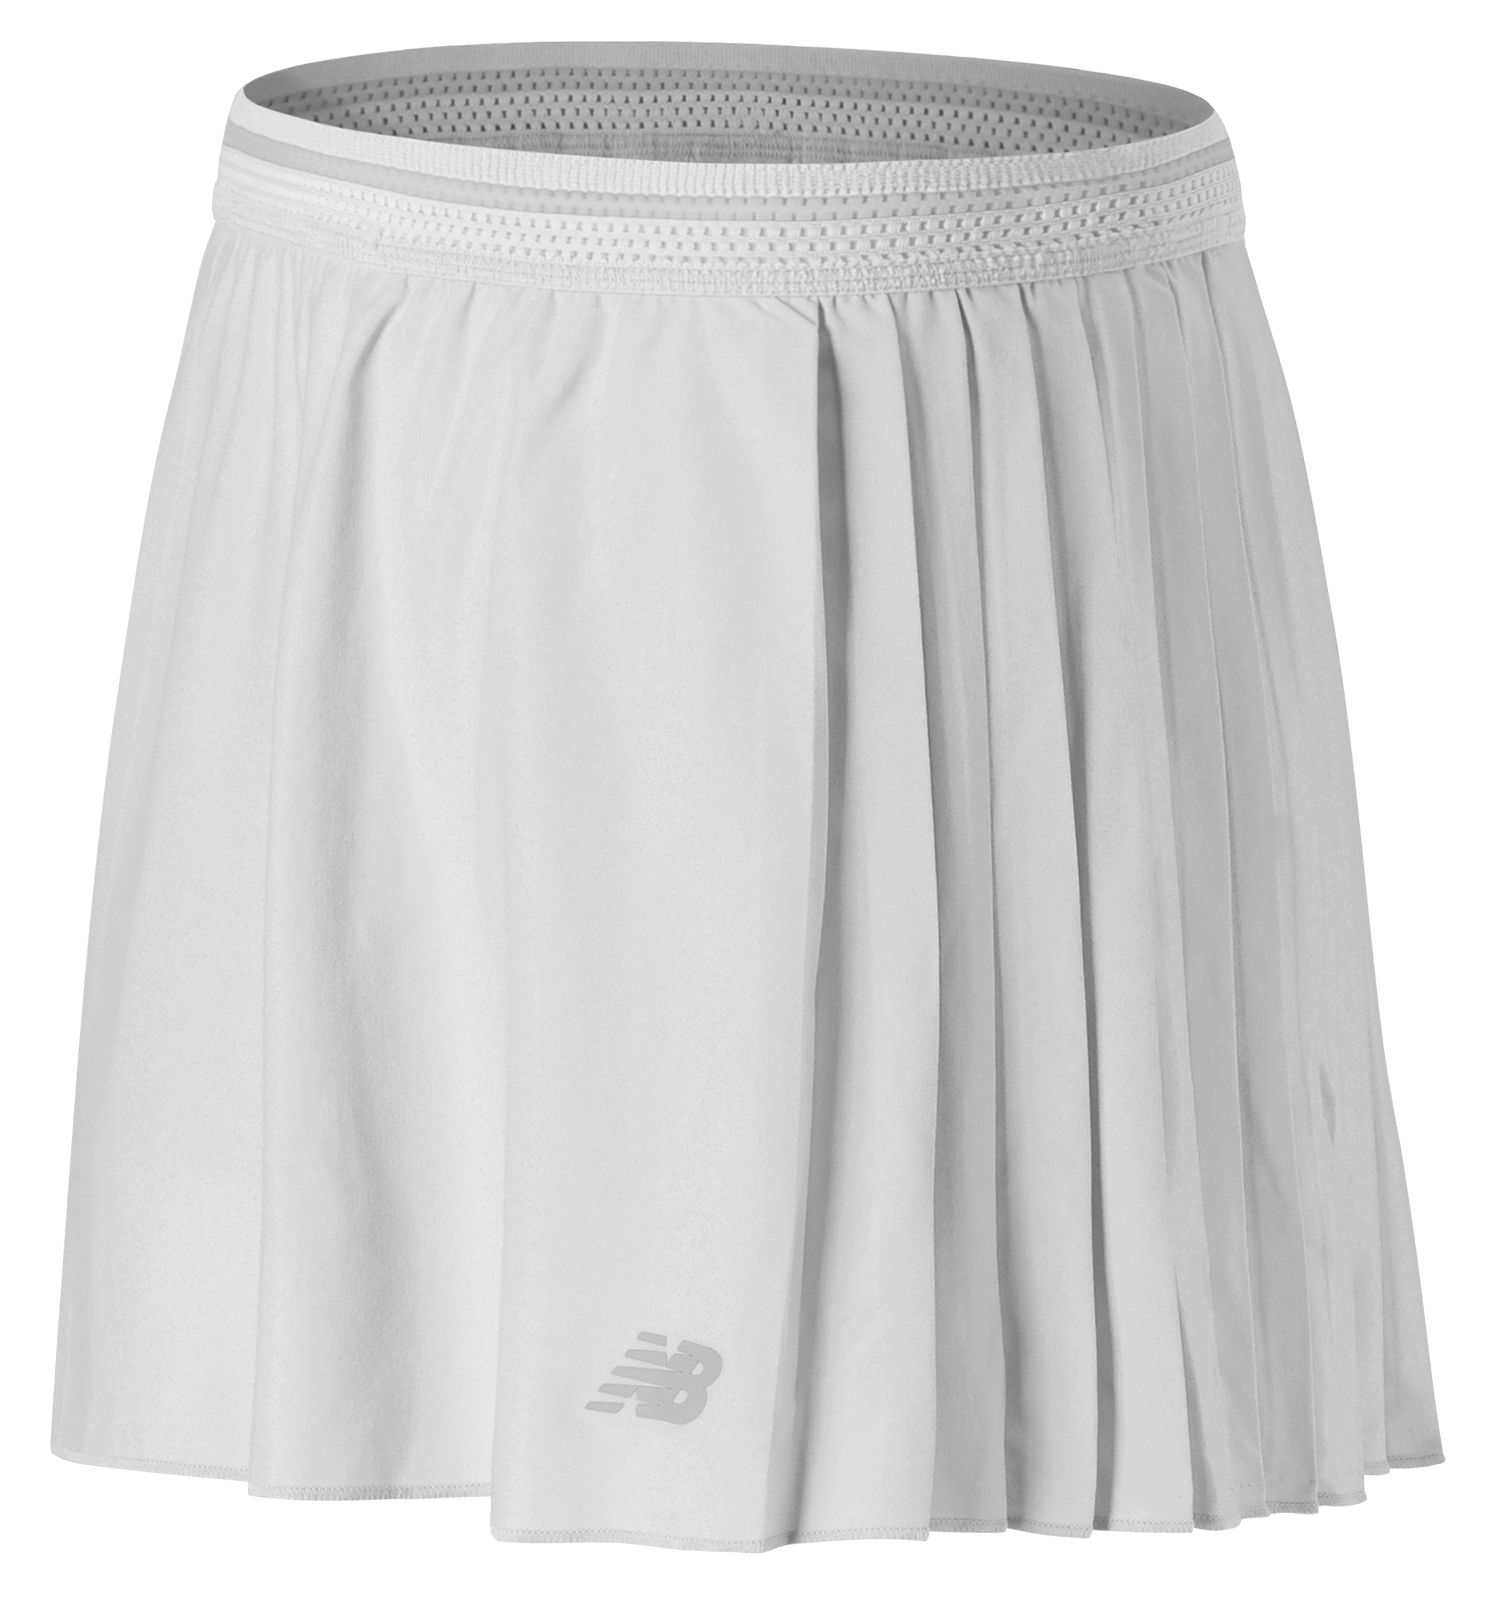 New Balance : Tournament Skort : Women's Apparel Outlet : WK53439WT